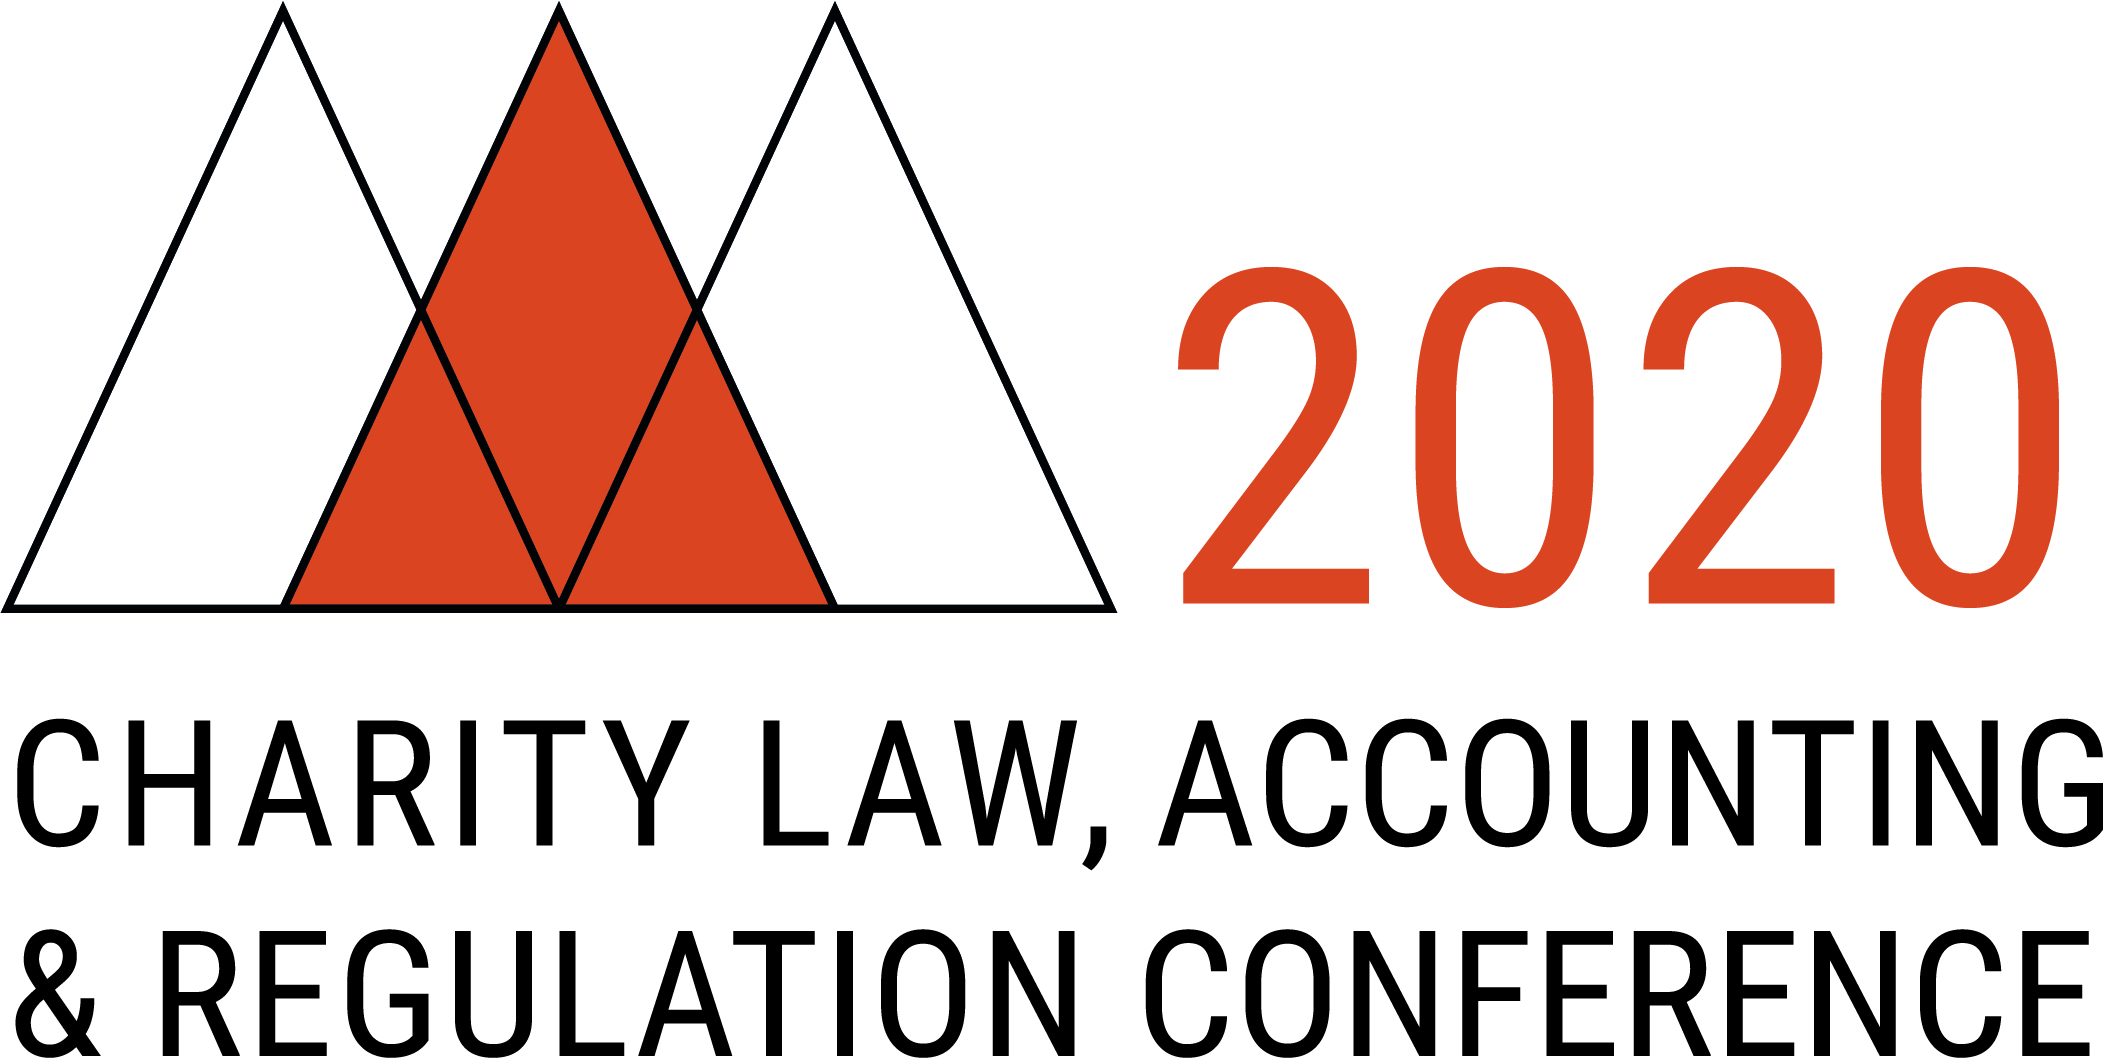 Charity Law, Accounting, and Regulation Conference 2020: Responding to COVID-19 – how might we #buildbackbetter?